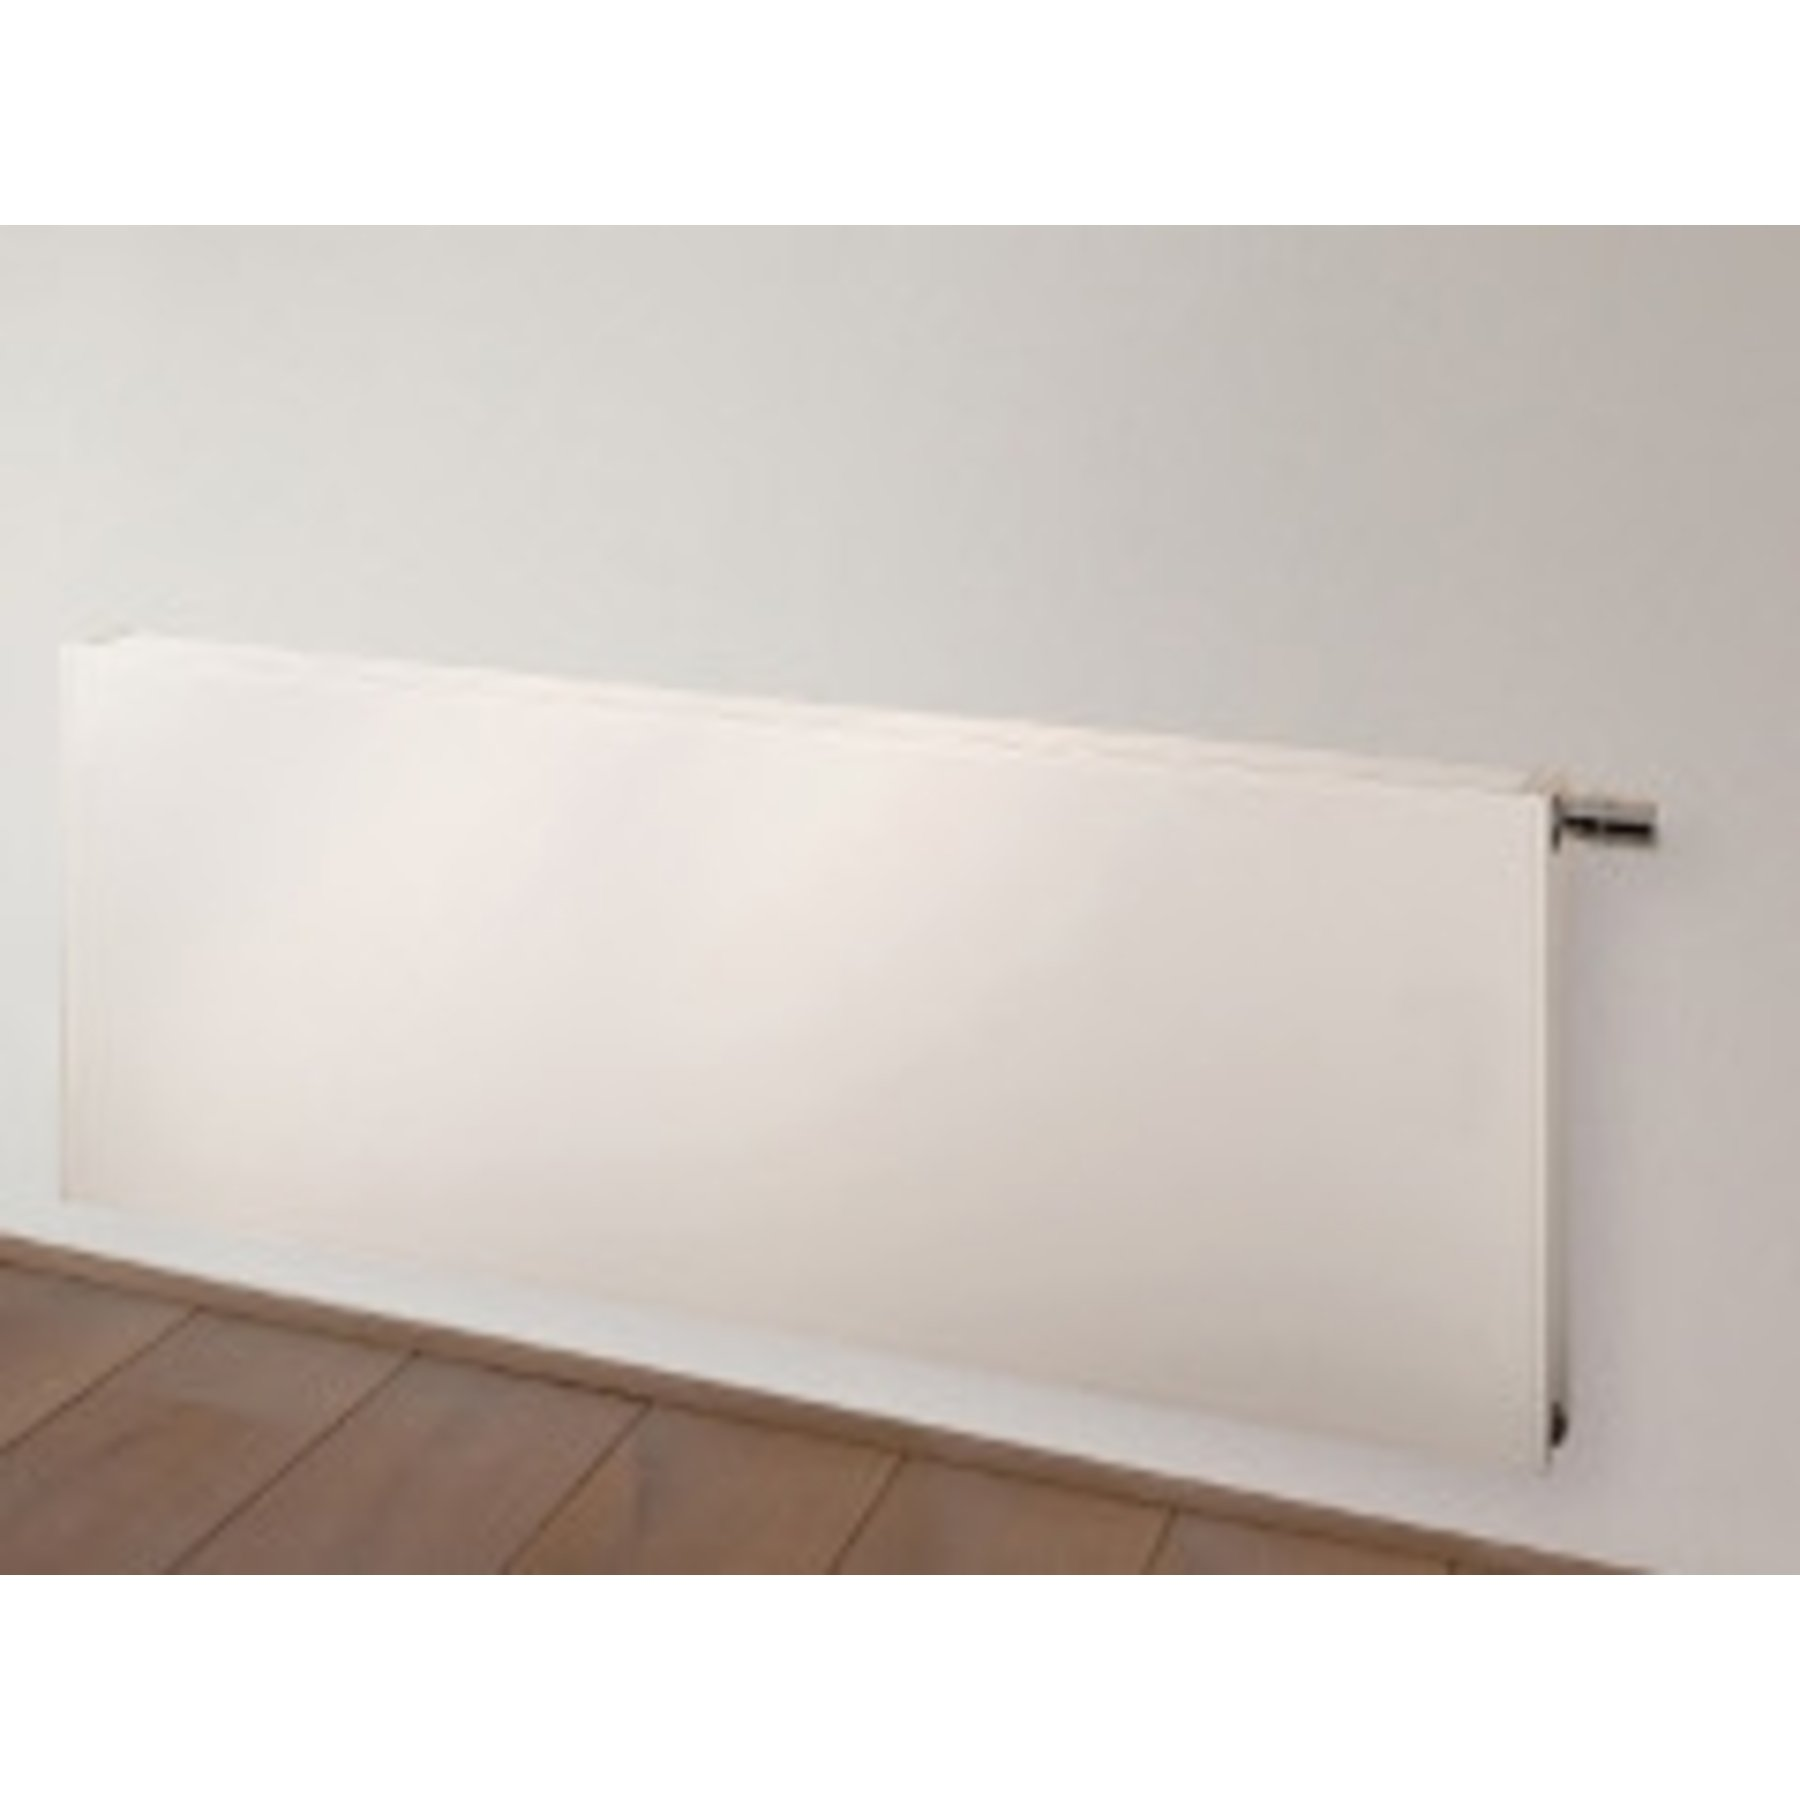 Vasco Flatline Paneelradiator type 21 400x400mm 366W vlak wit structuur (S600)